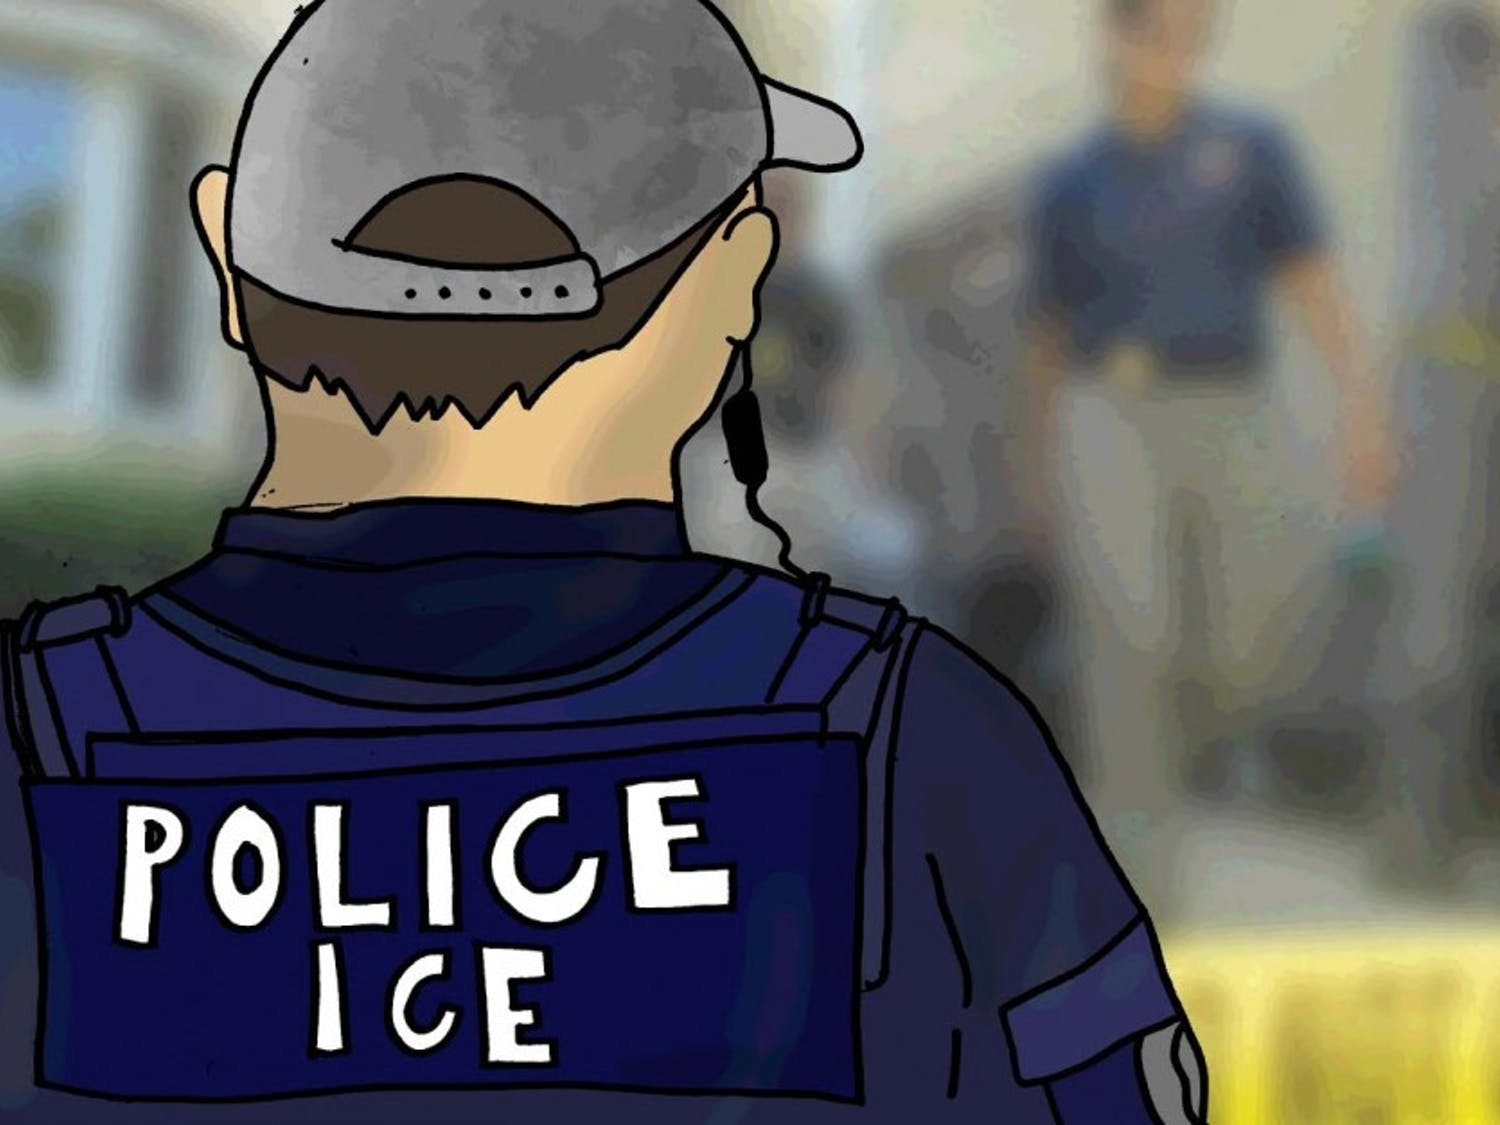 """Immigration and Custom Enforcement arrested 83 people across Wisconsin over the weekend, in what city officials called a """"heartbreaking"""" attack on immigrant communities."""